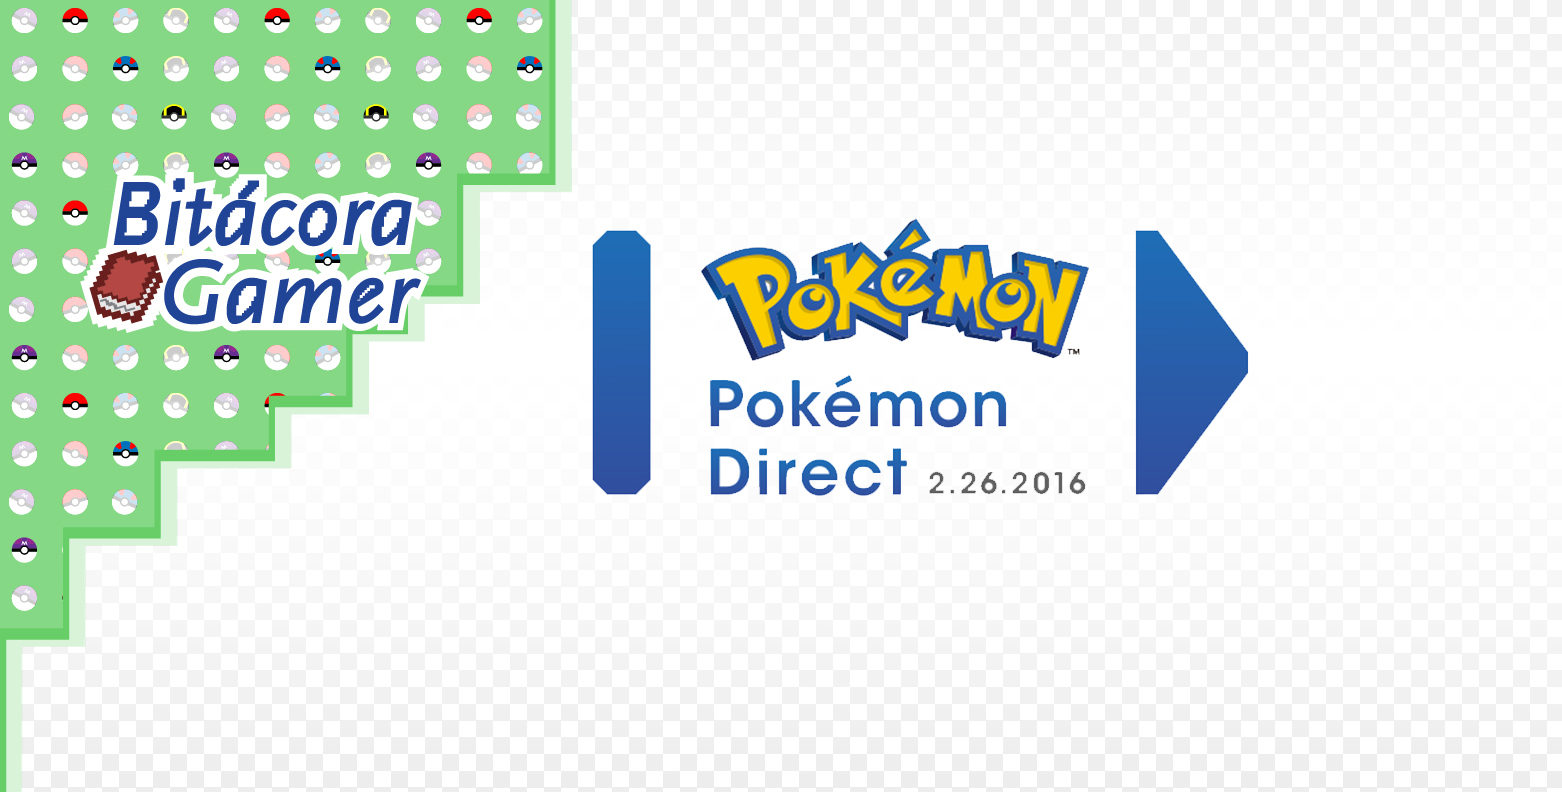 Pokémon Direct | 2.26.2016 | Bitácora Gamer